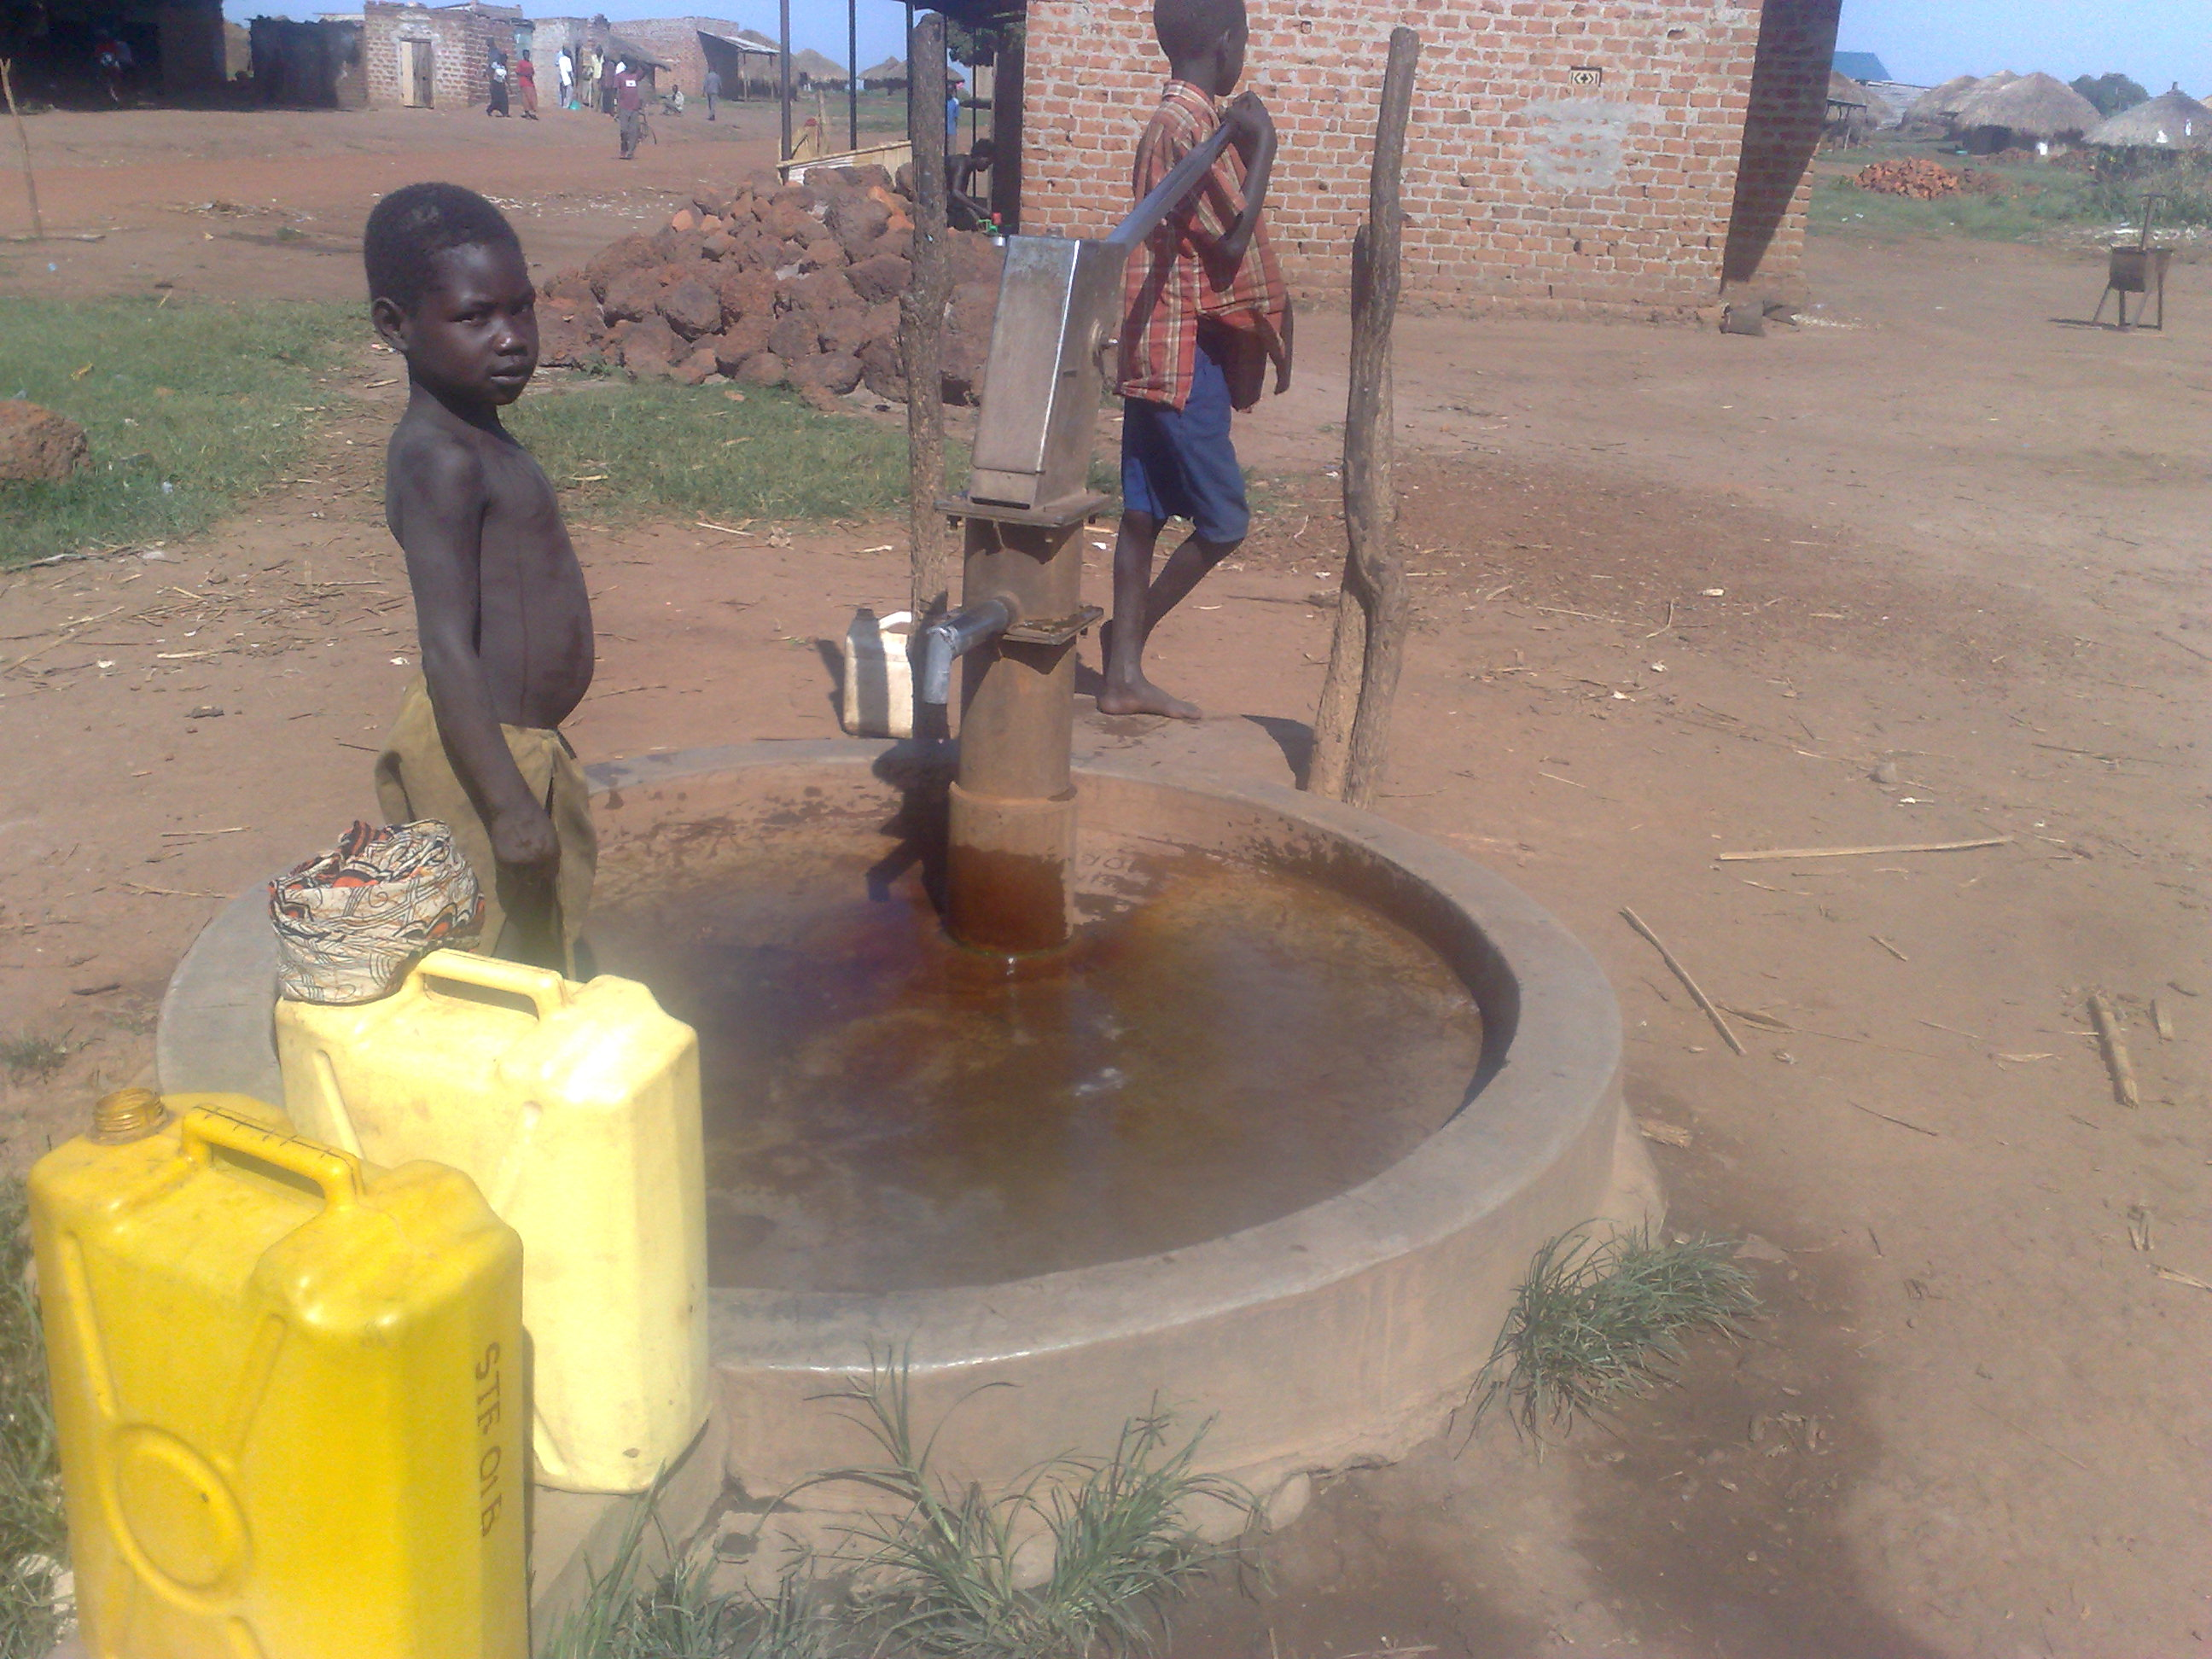 Children collecting water at a bore hole in Amuru district, Northern